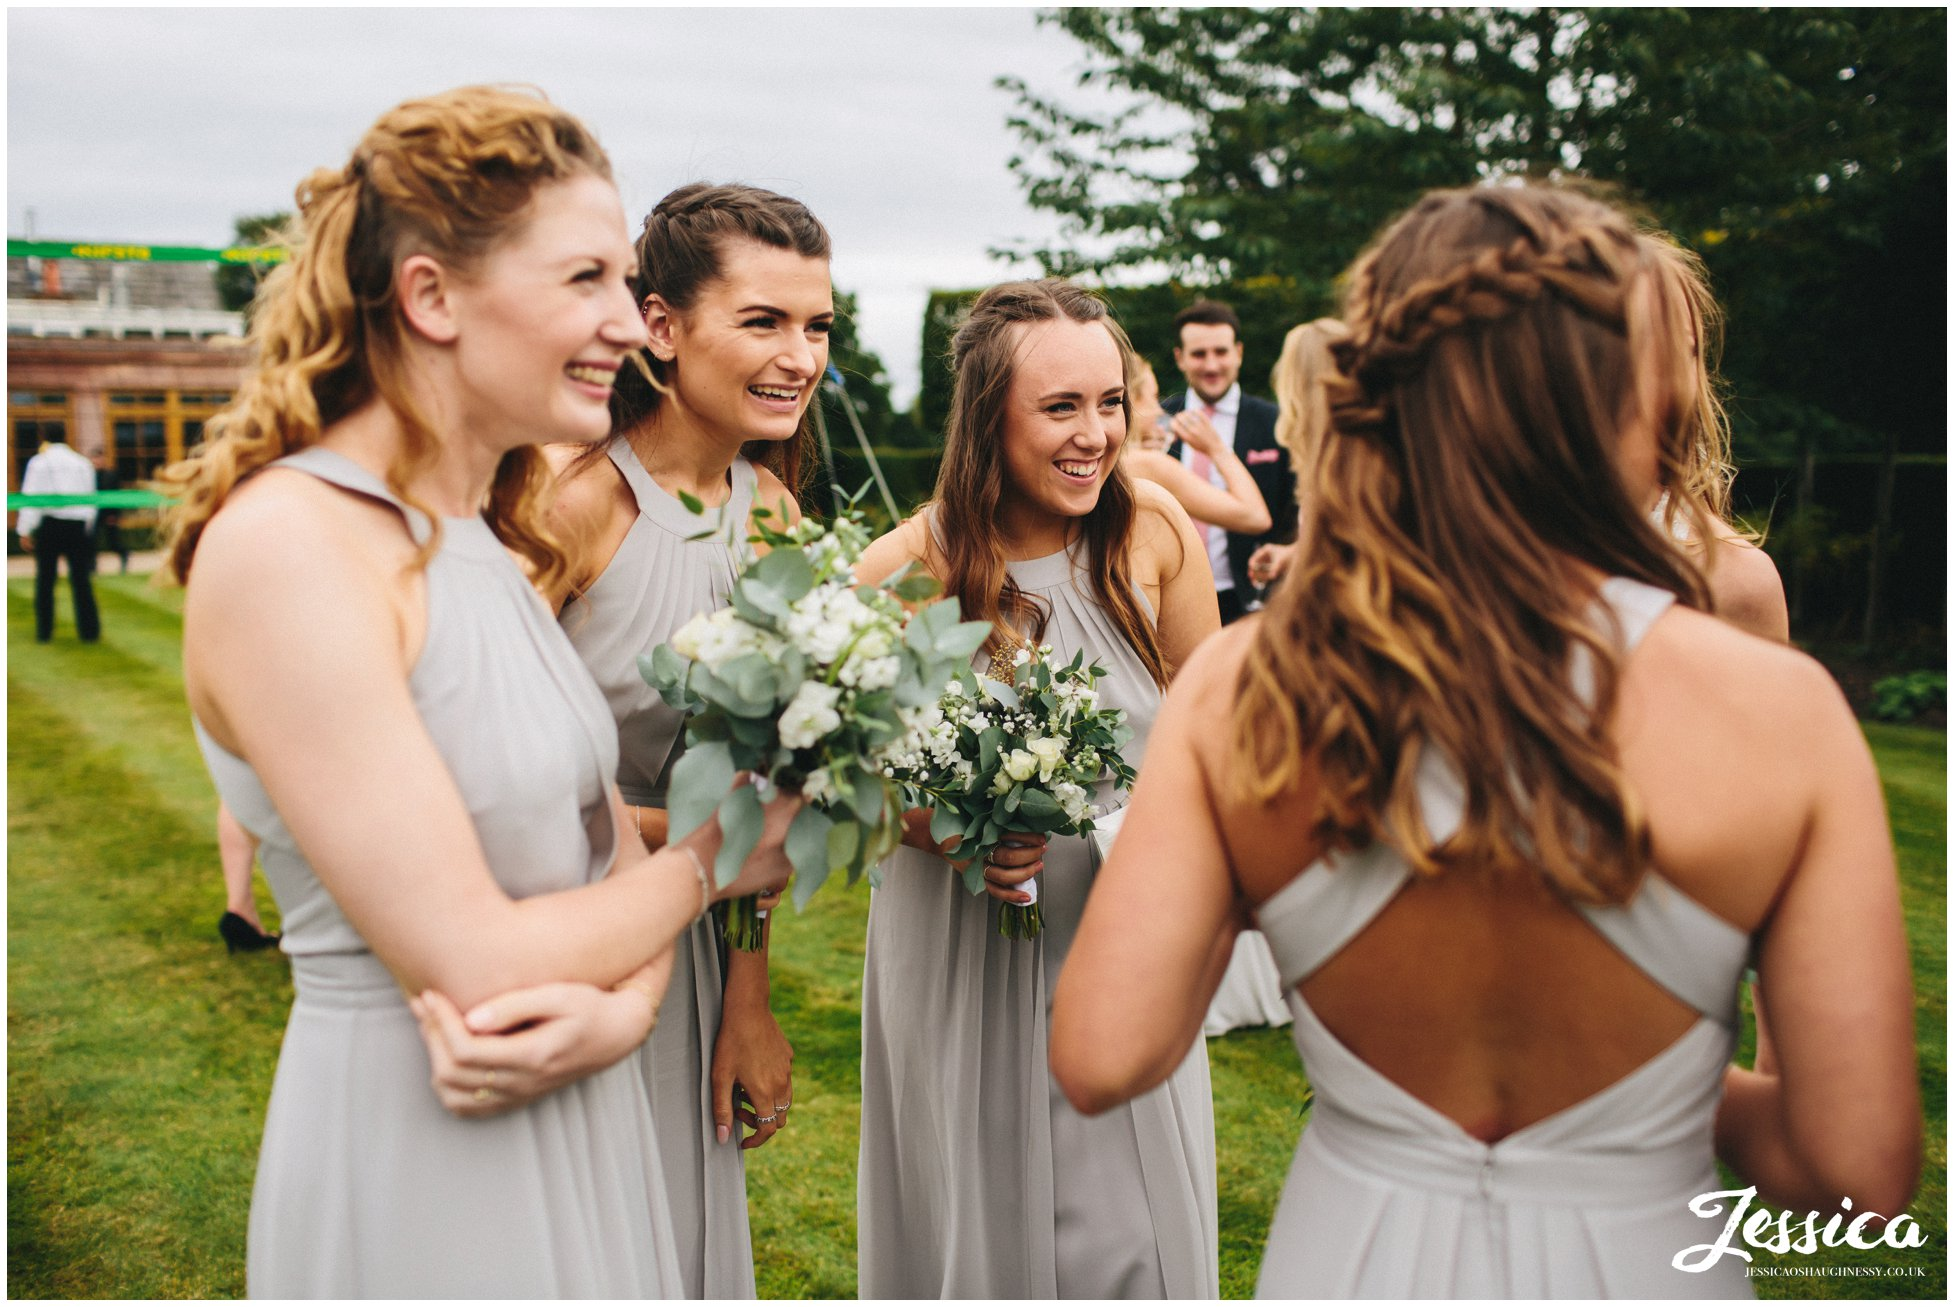 merrydale manor in cheshire - bridesmaids laughing together